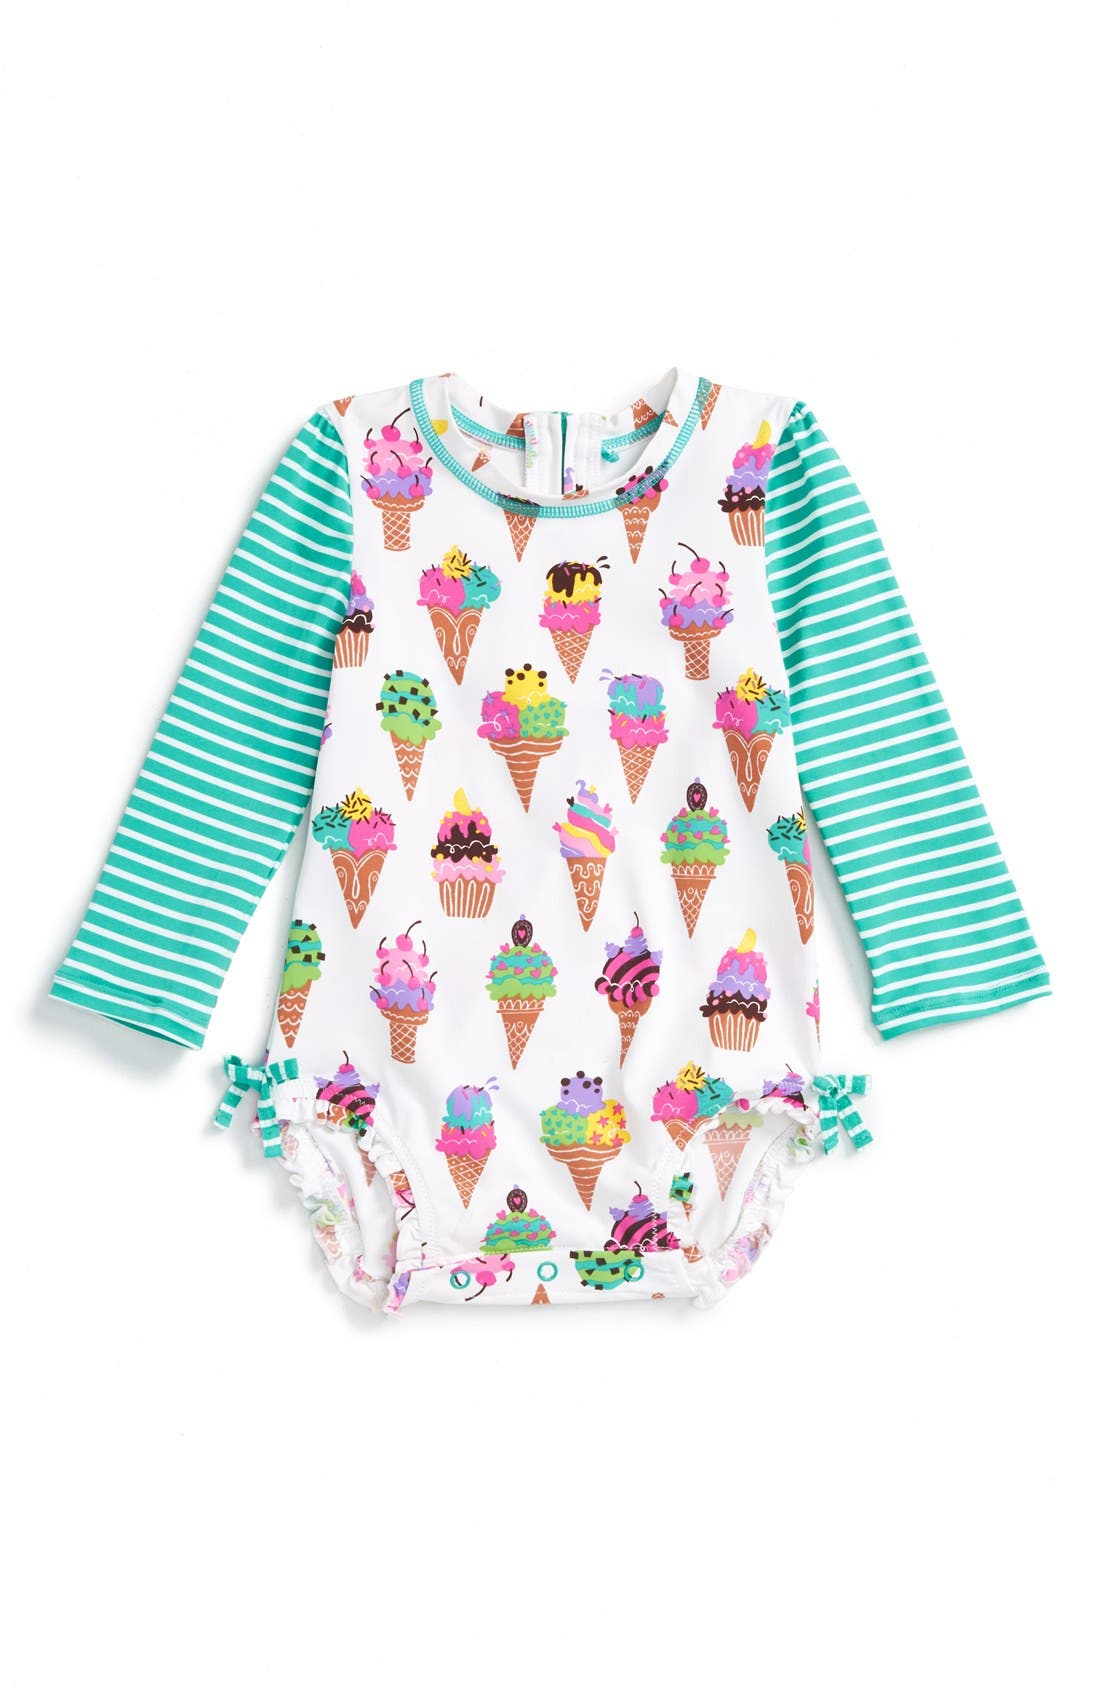 Baby girl UV sun protection swimwear, rash guard sets, sunsuits, sun hats, swimsuits, beach rompers, bathing suits, and other adorable UPF 50+ beachwear items.